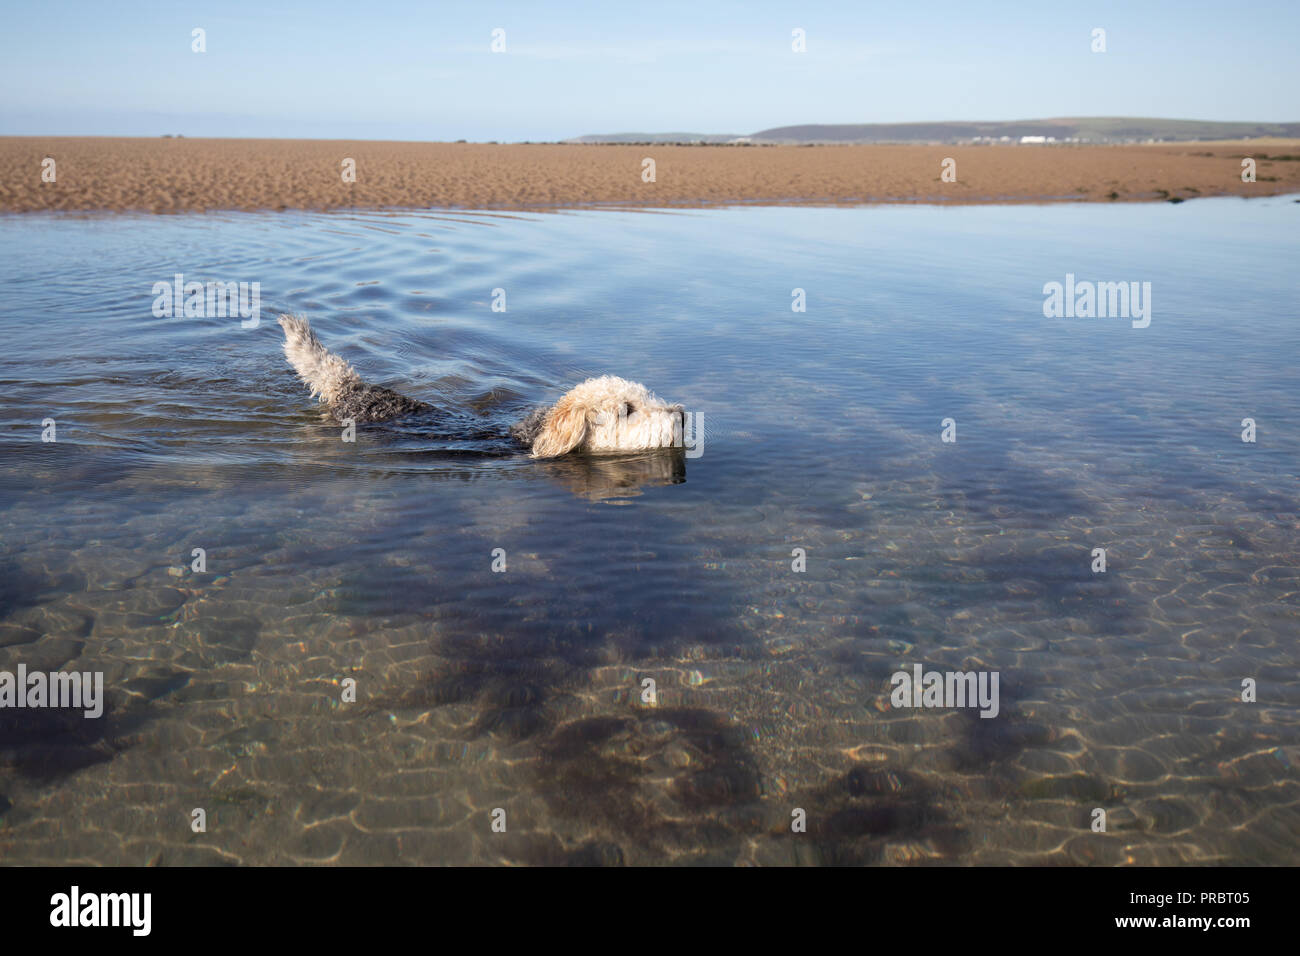 A dog cools off at the beach in Devon - Stock Image